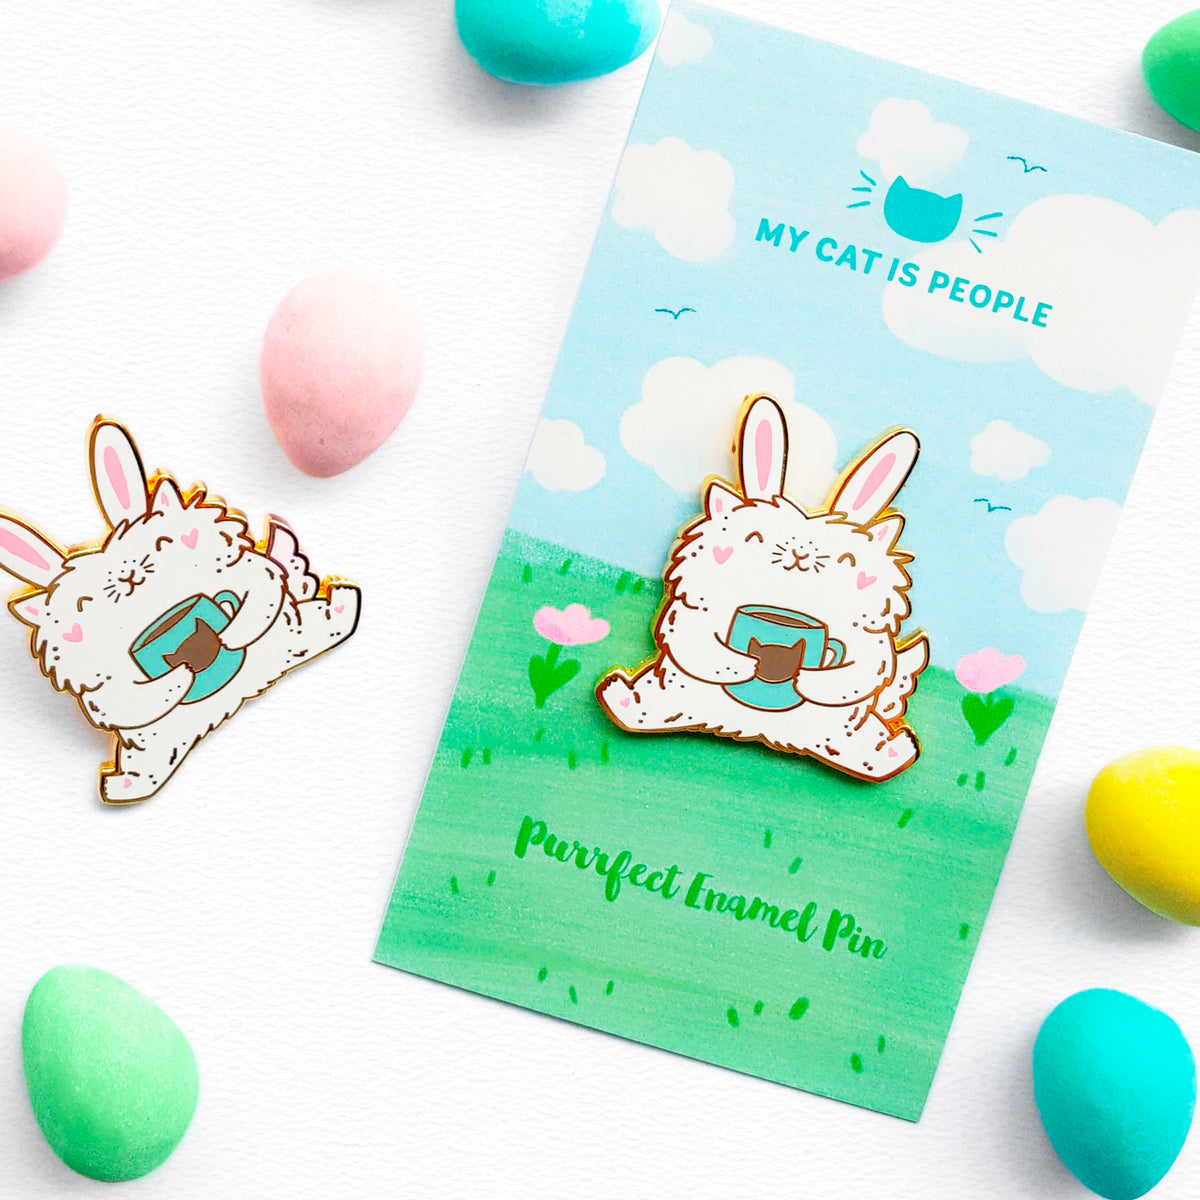 Easter Kitty - Spring Kitty Bunny enamel pin by My Cat Is People